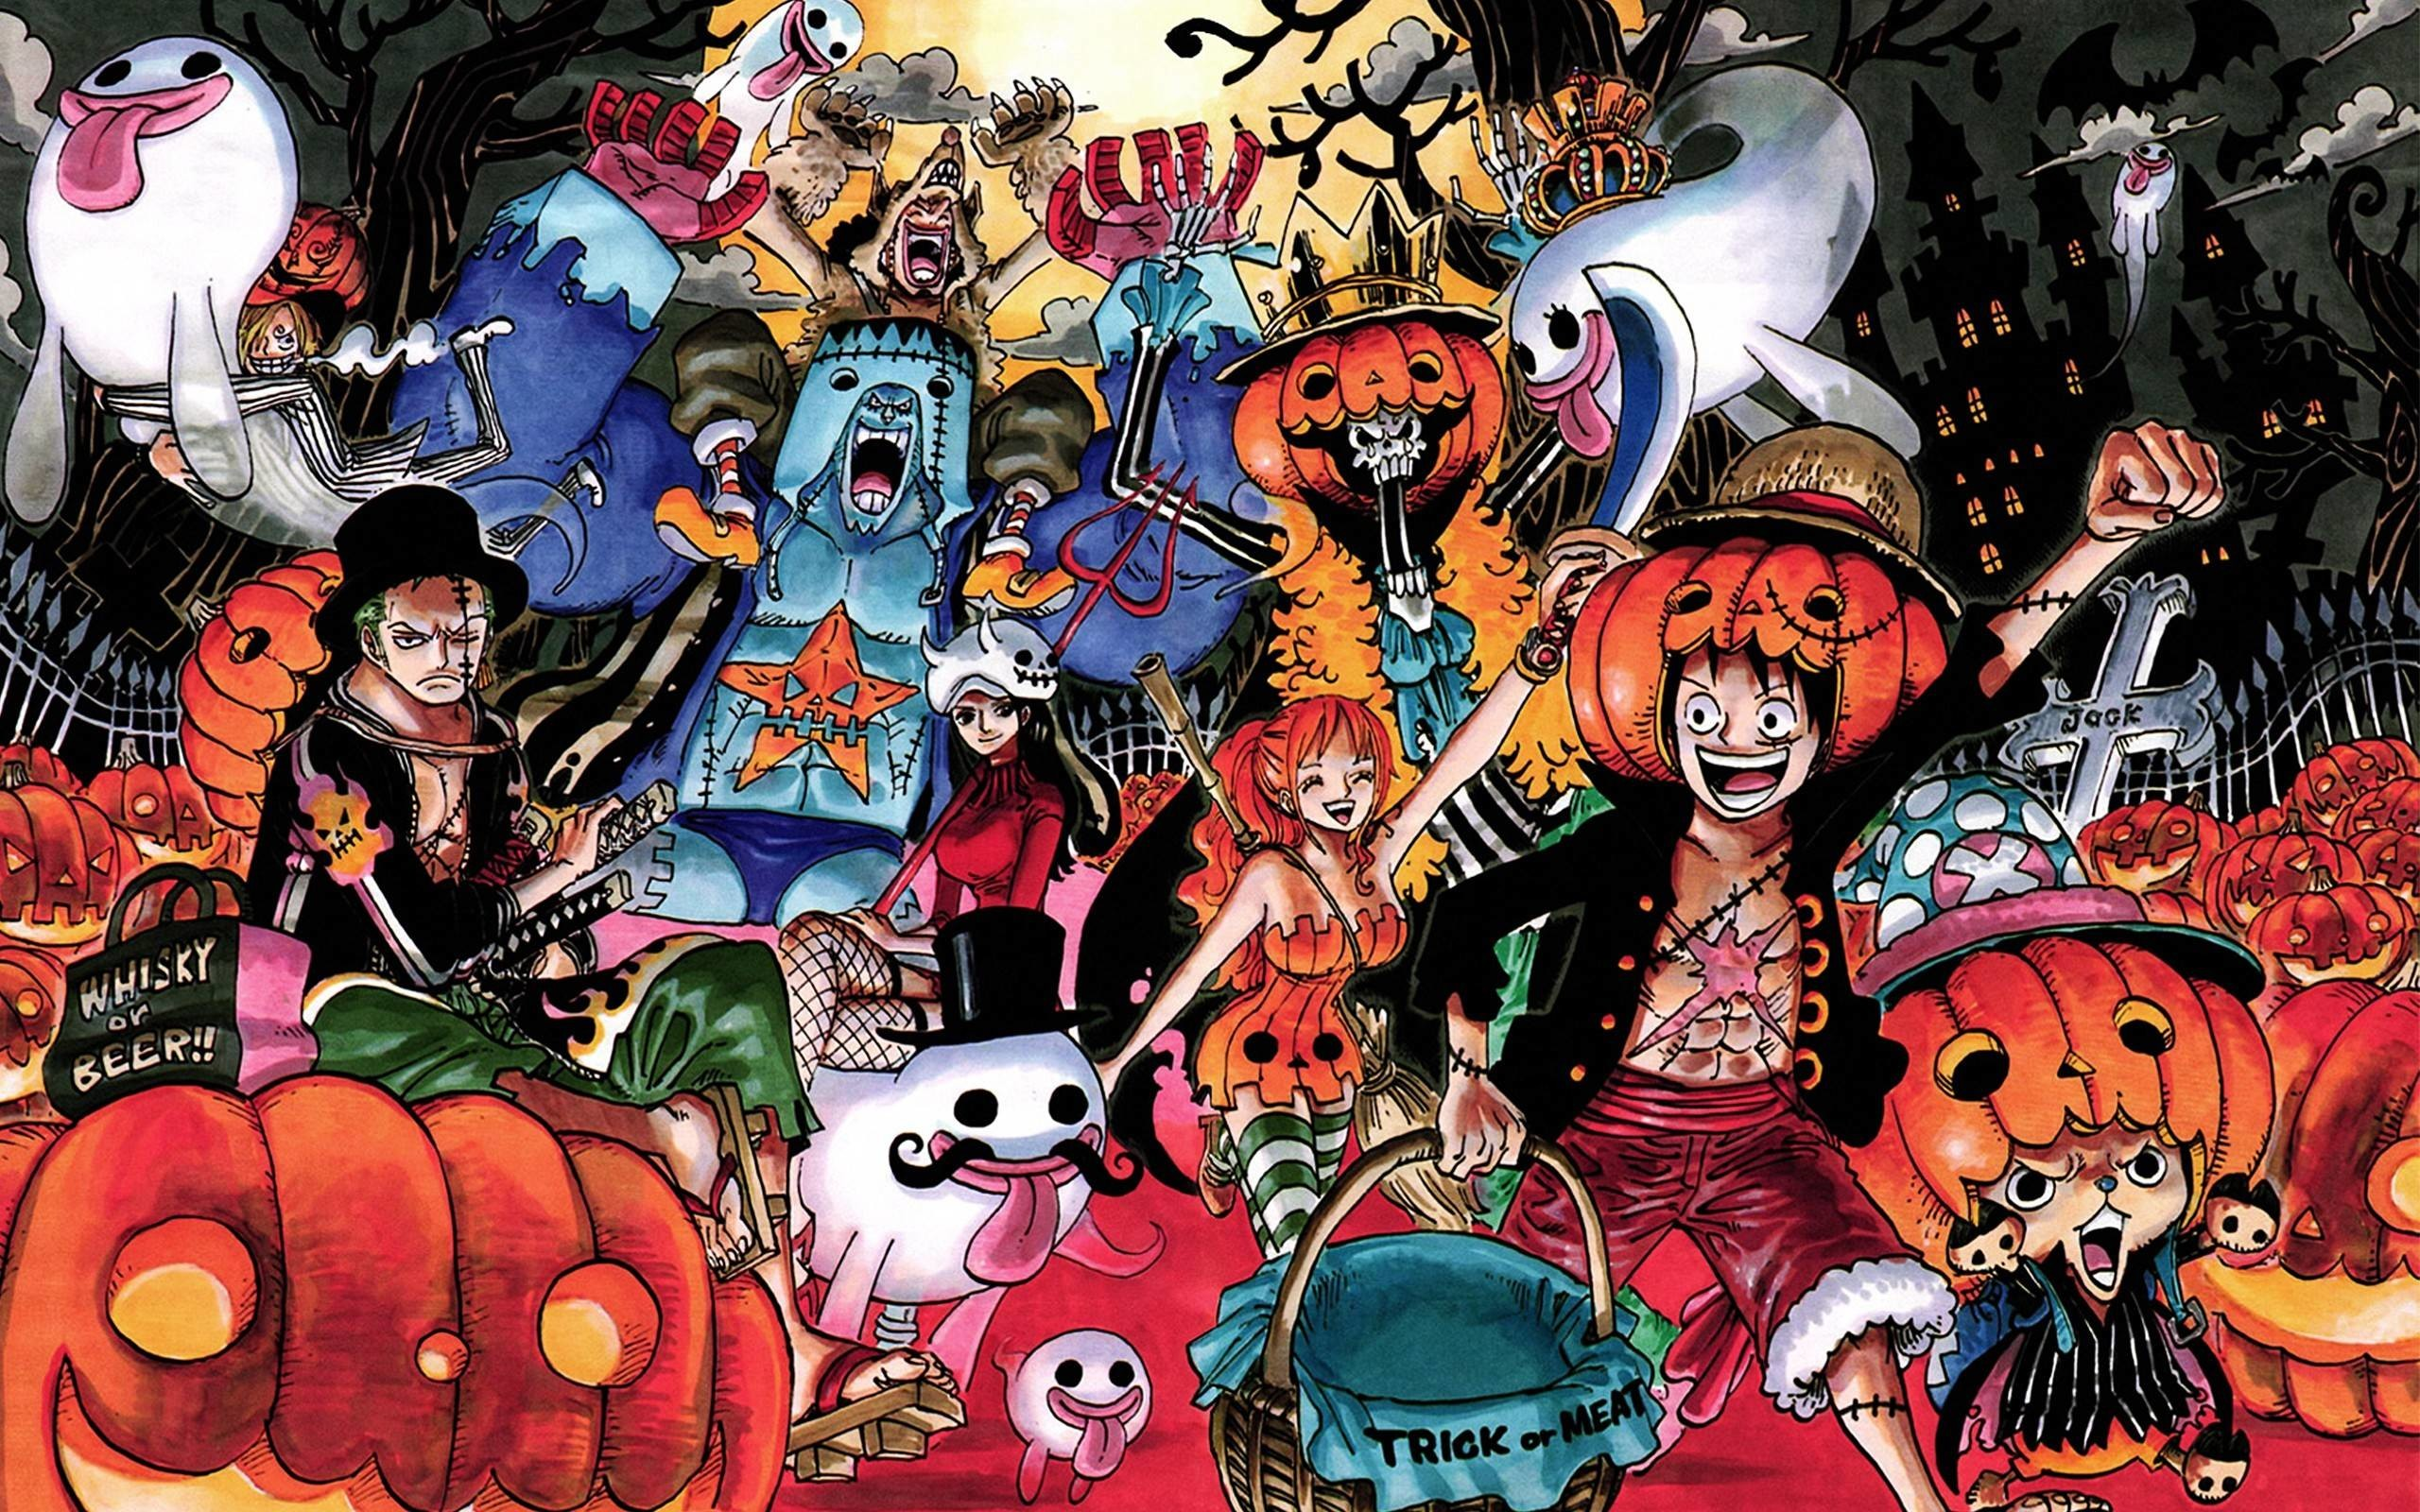 Res: 2560x1600, One Piece Wallpapers 8 - 2560 X 1600